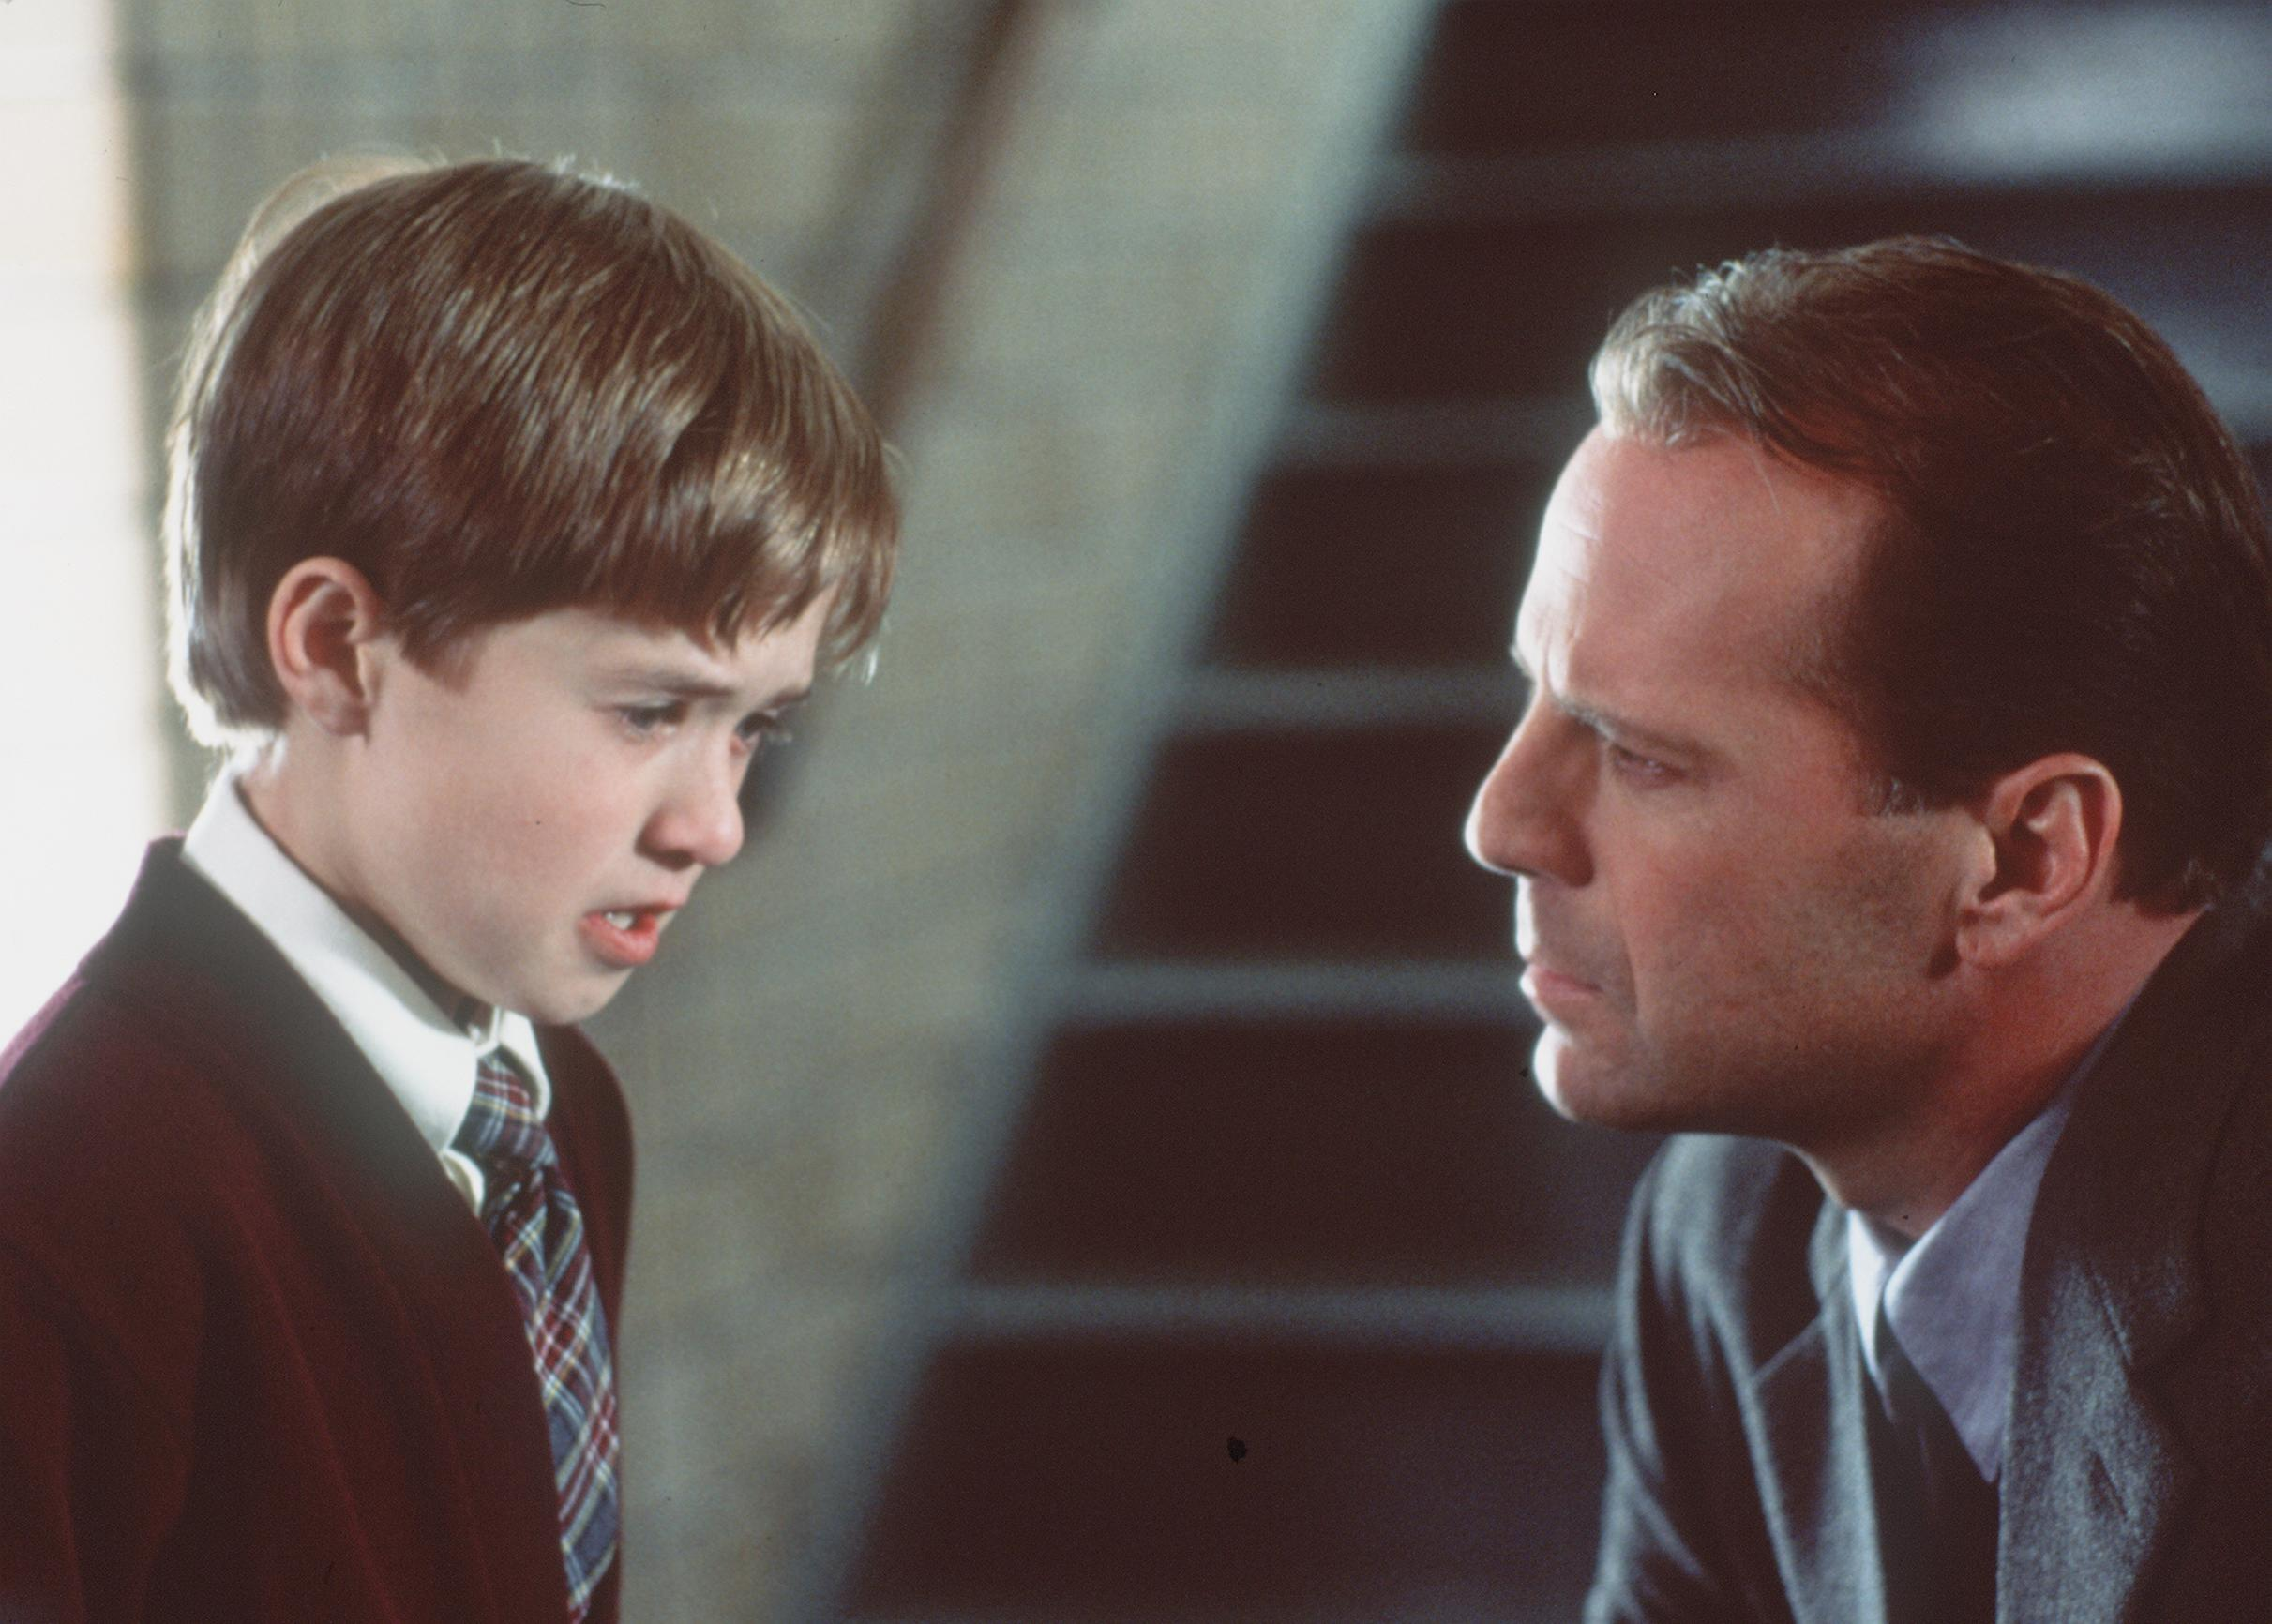 Psychologist Bruce Willis dealing with Haley Joel Osment as a child who insists he can see ghosts in The Sixth Sense (1999)